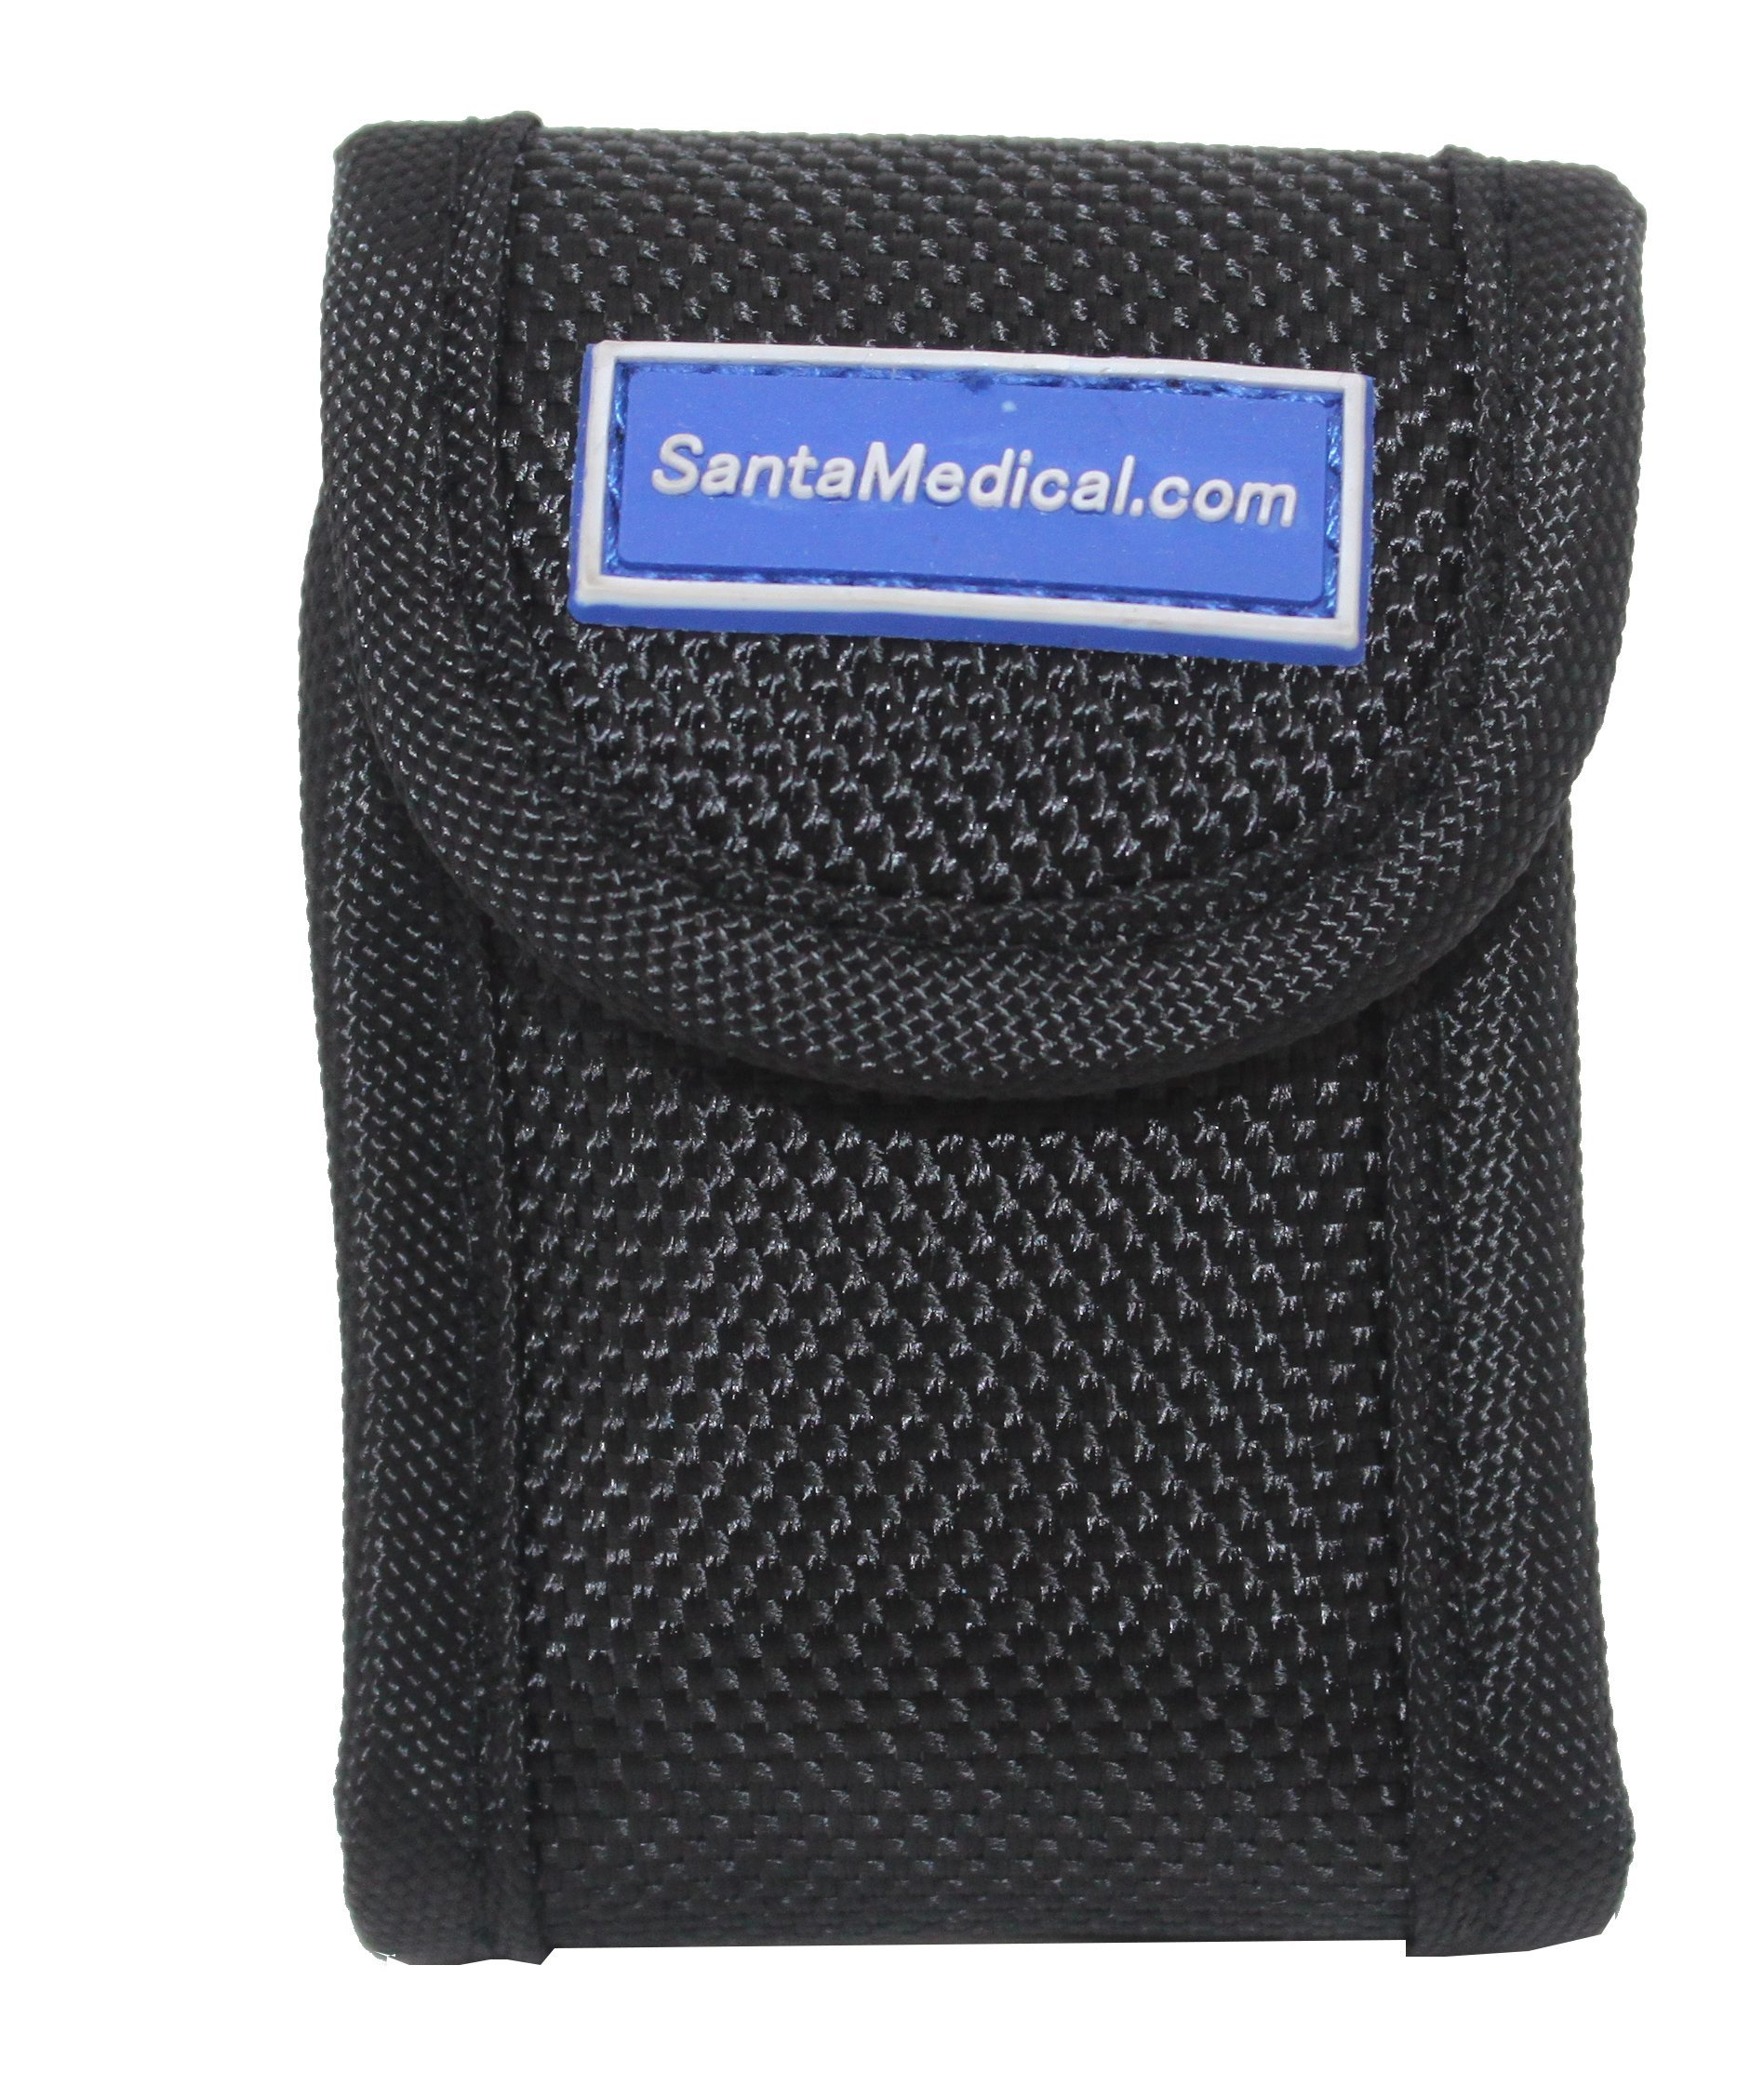 Santamedical Fingertip Pulse Oximeter SpO2 bag with Lanyard